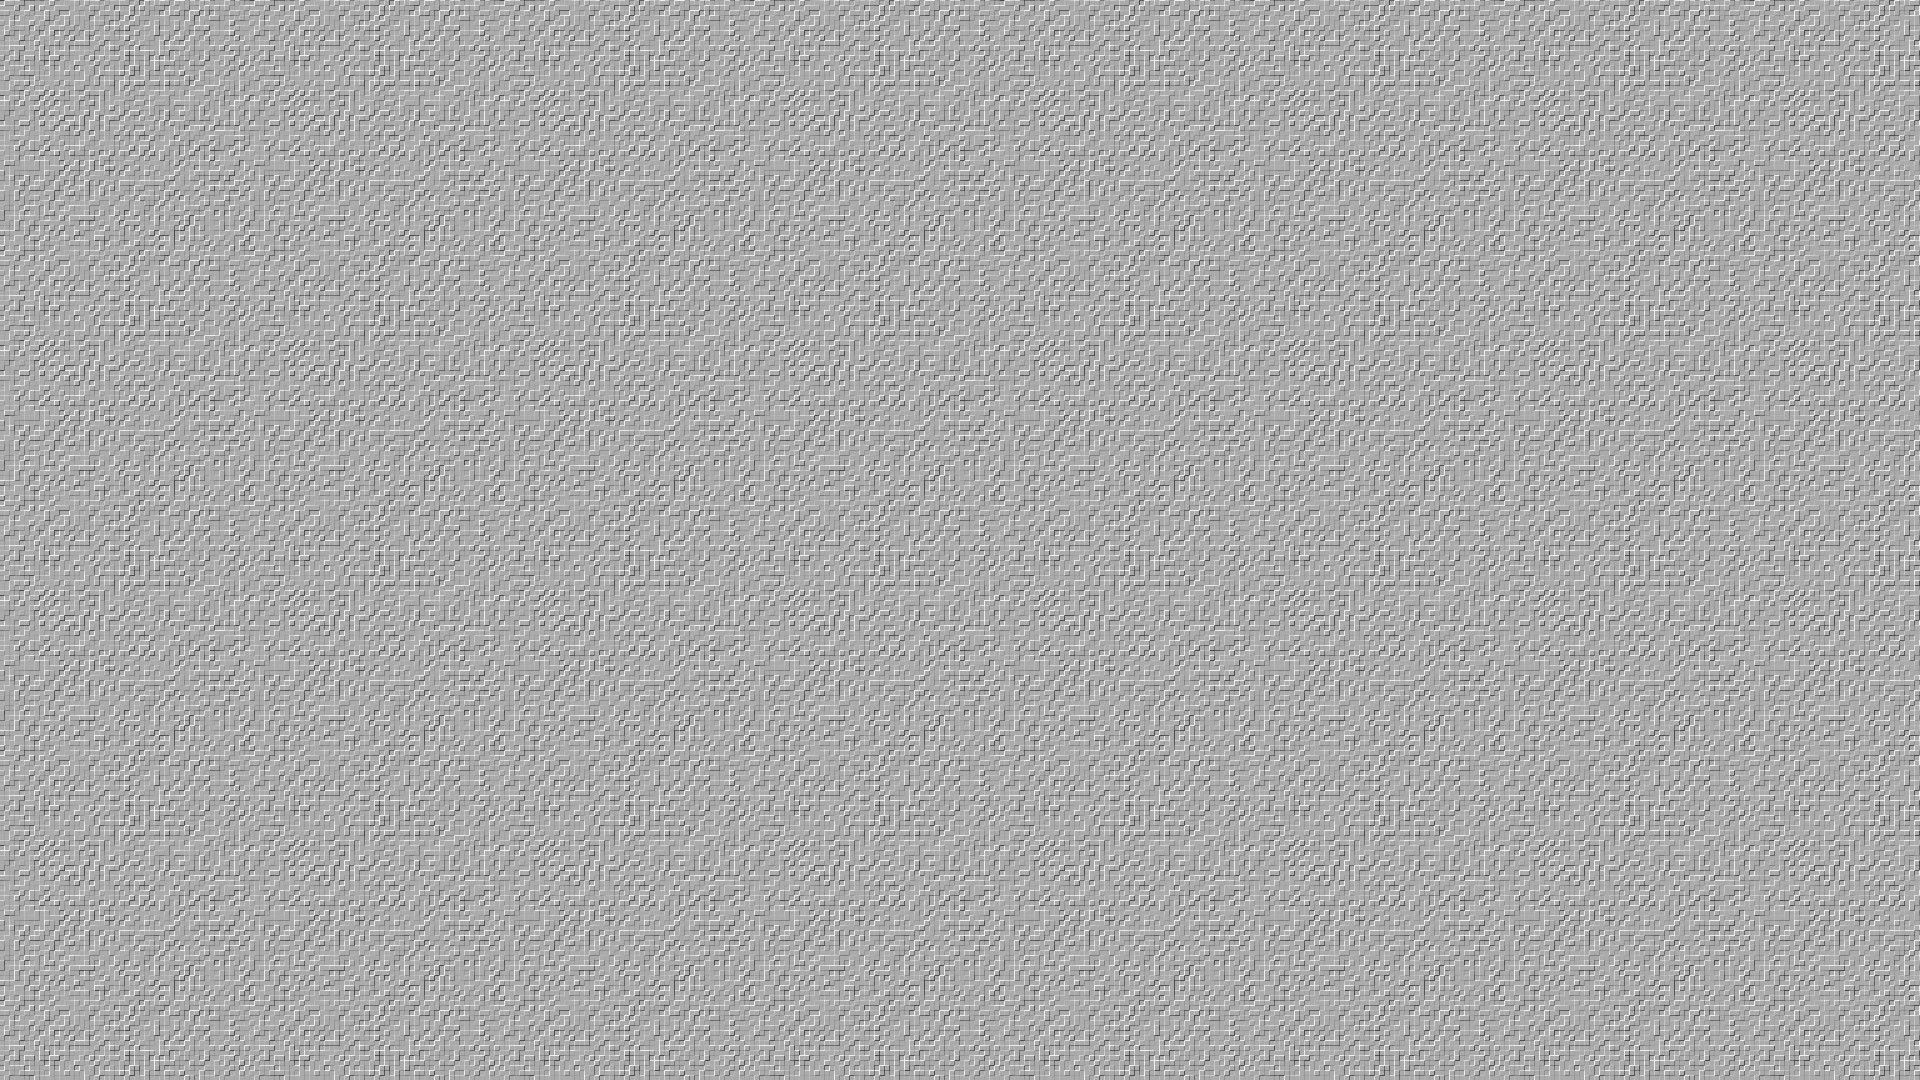 Website Background Texture wallpaper for pc